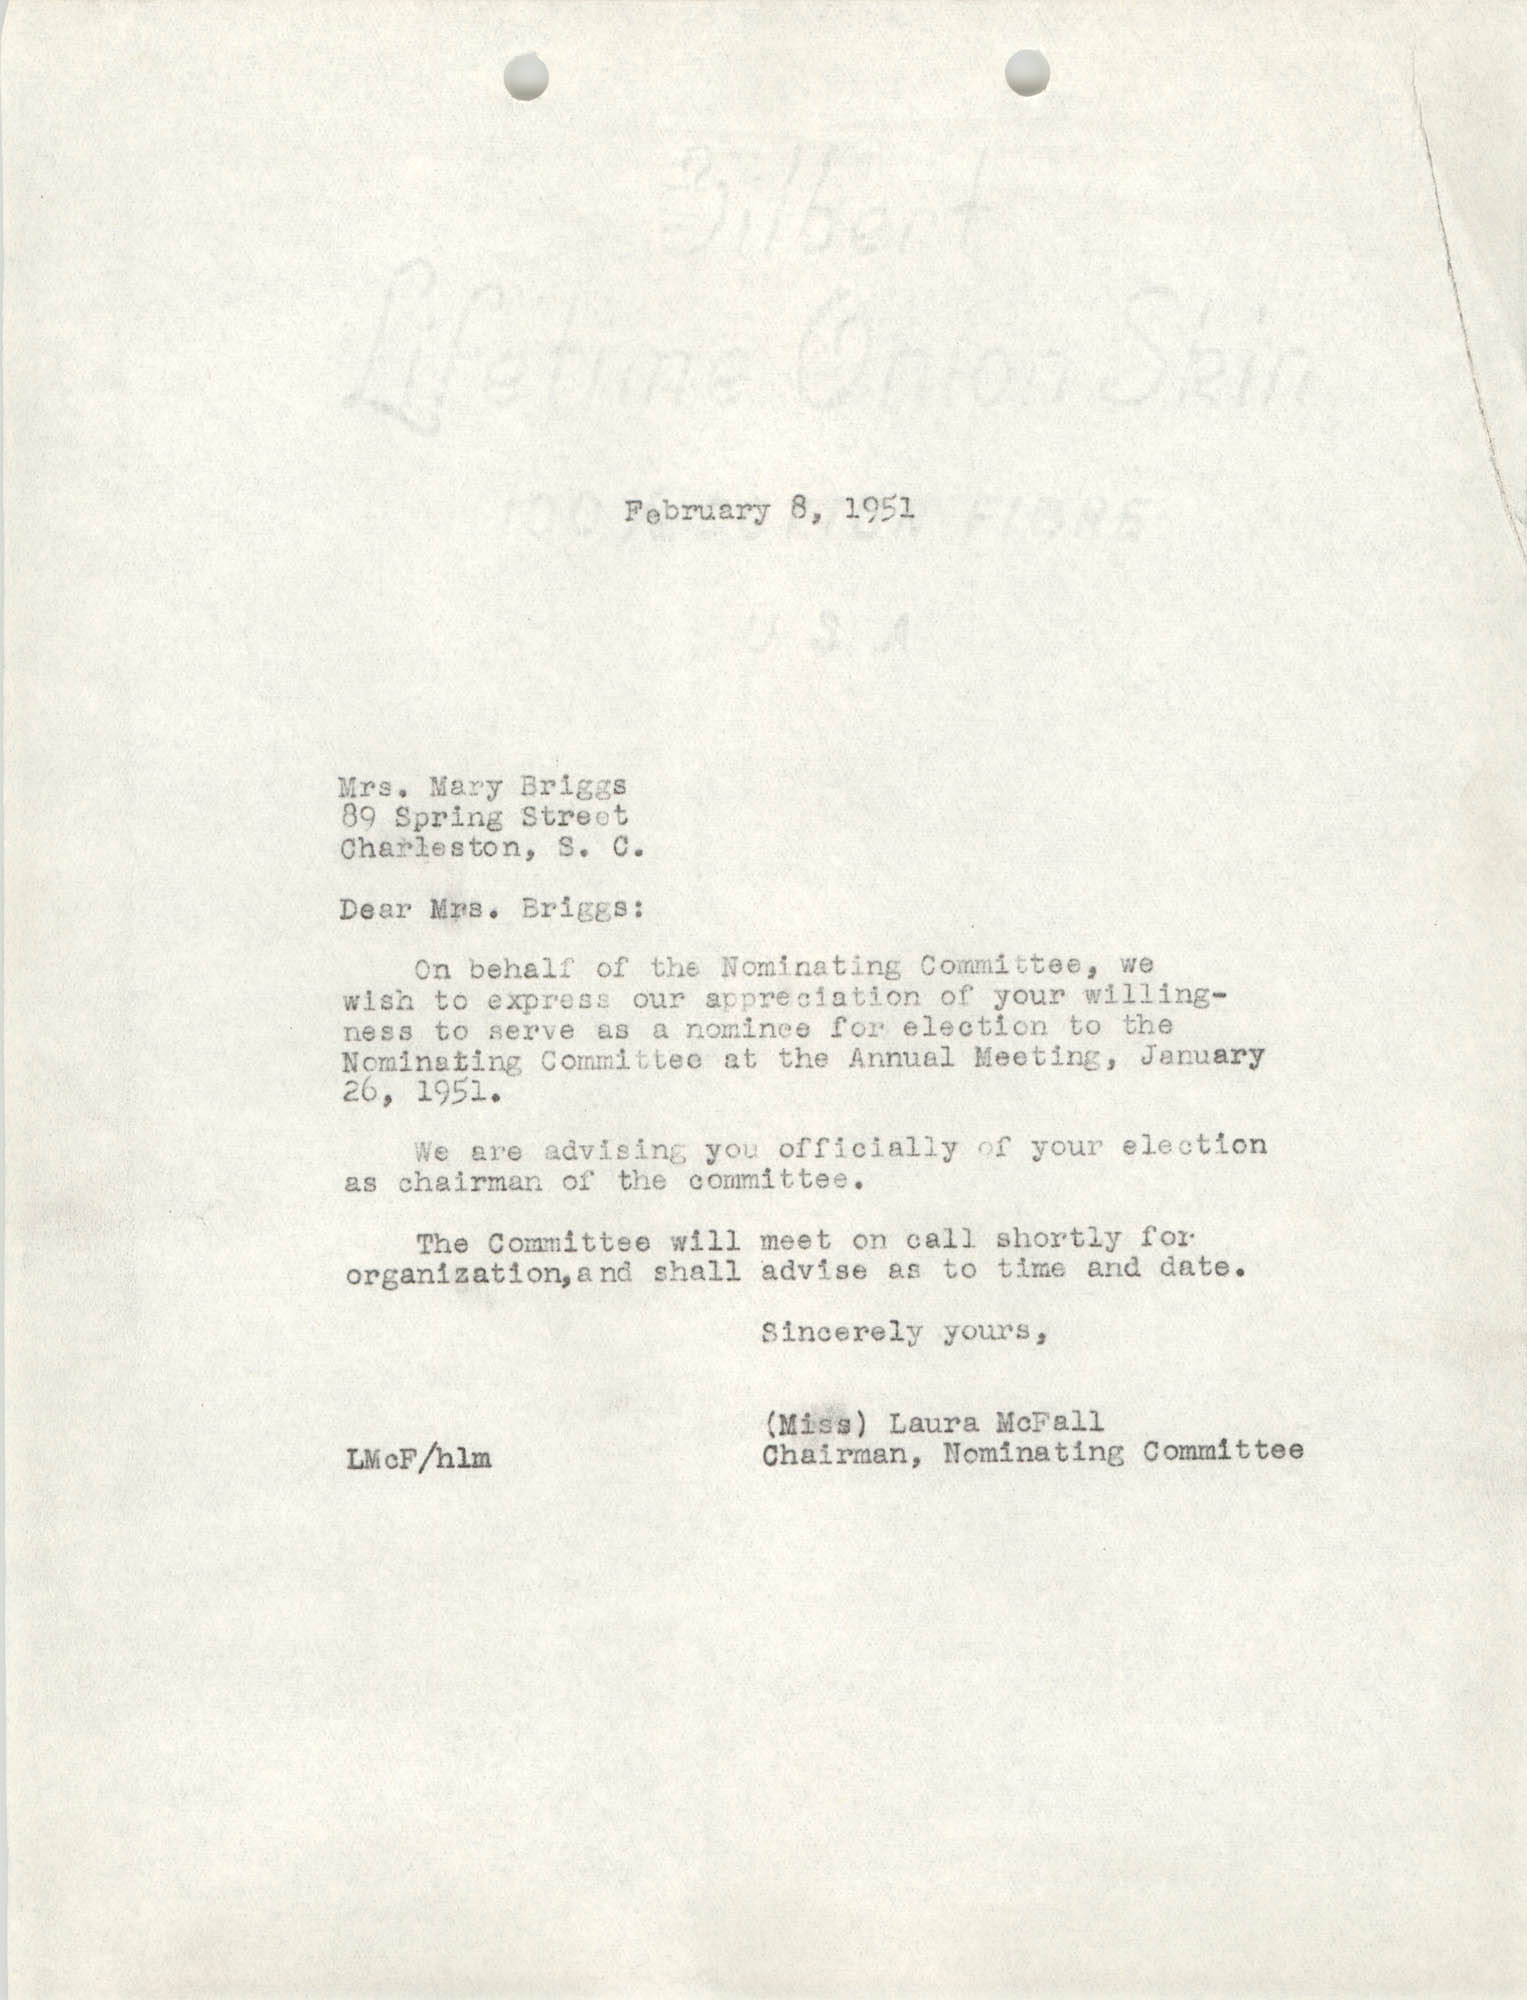 Letter from Laura McFall to Mary Briggs, February 8, 1951